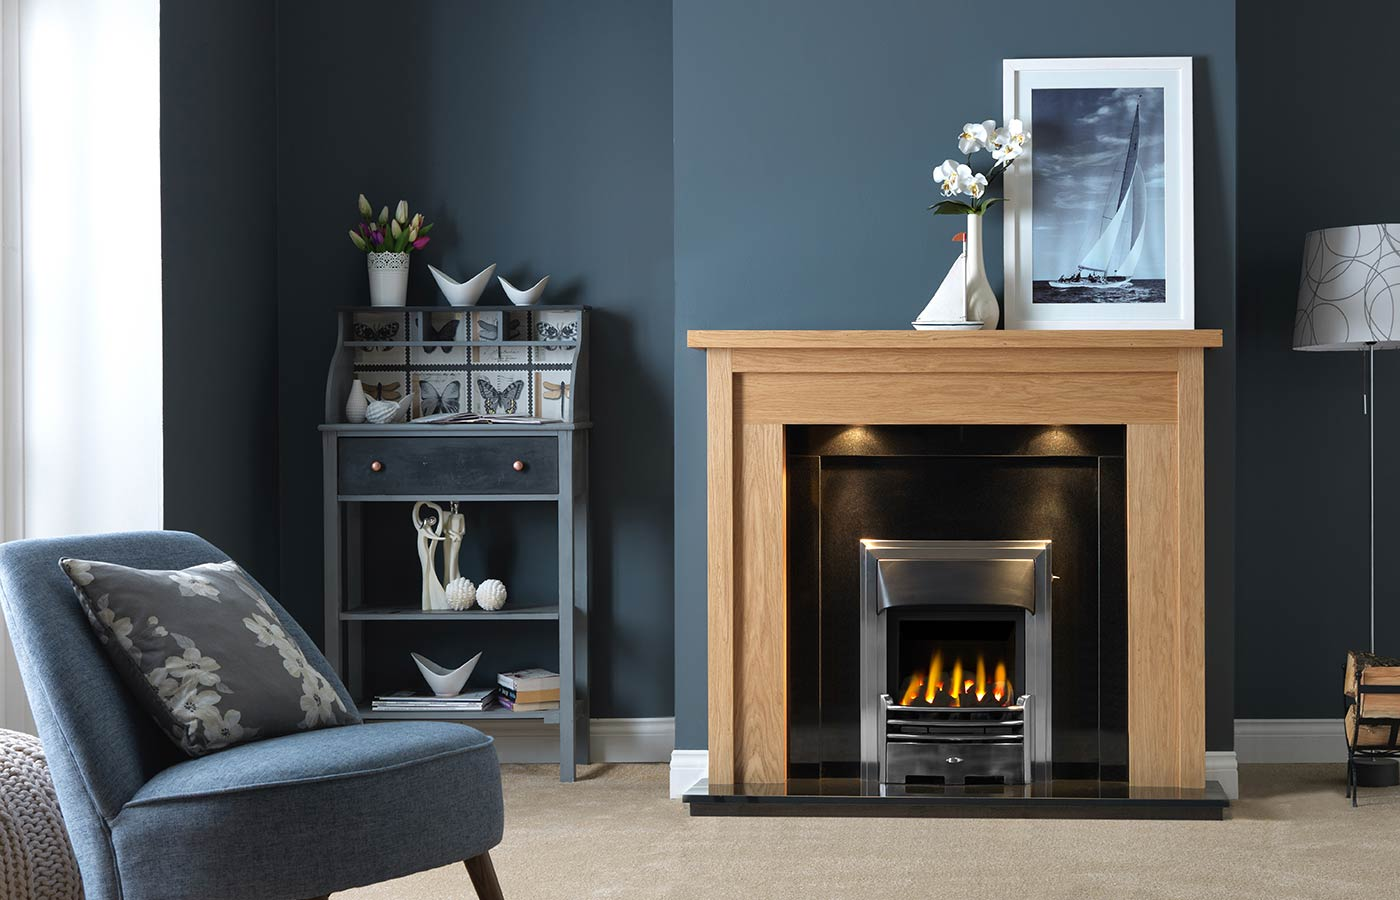 Askham Fireplace Suite in Light Oak Veneered MDF complete with Back Panel and Hearth in Ebony Granite, shown with Gallery Baltimore in Chrome Finish with Glass-Fronted Gas Convector Fire